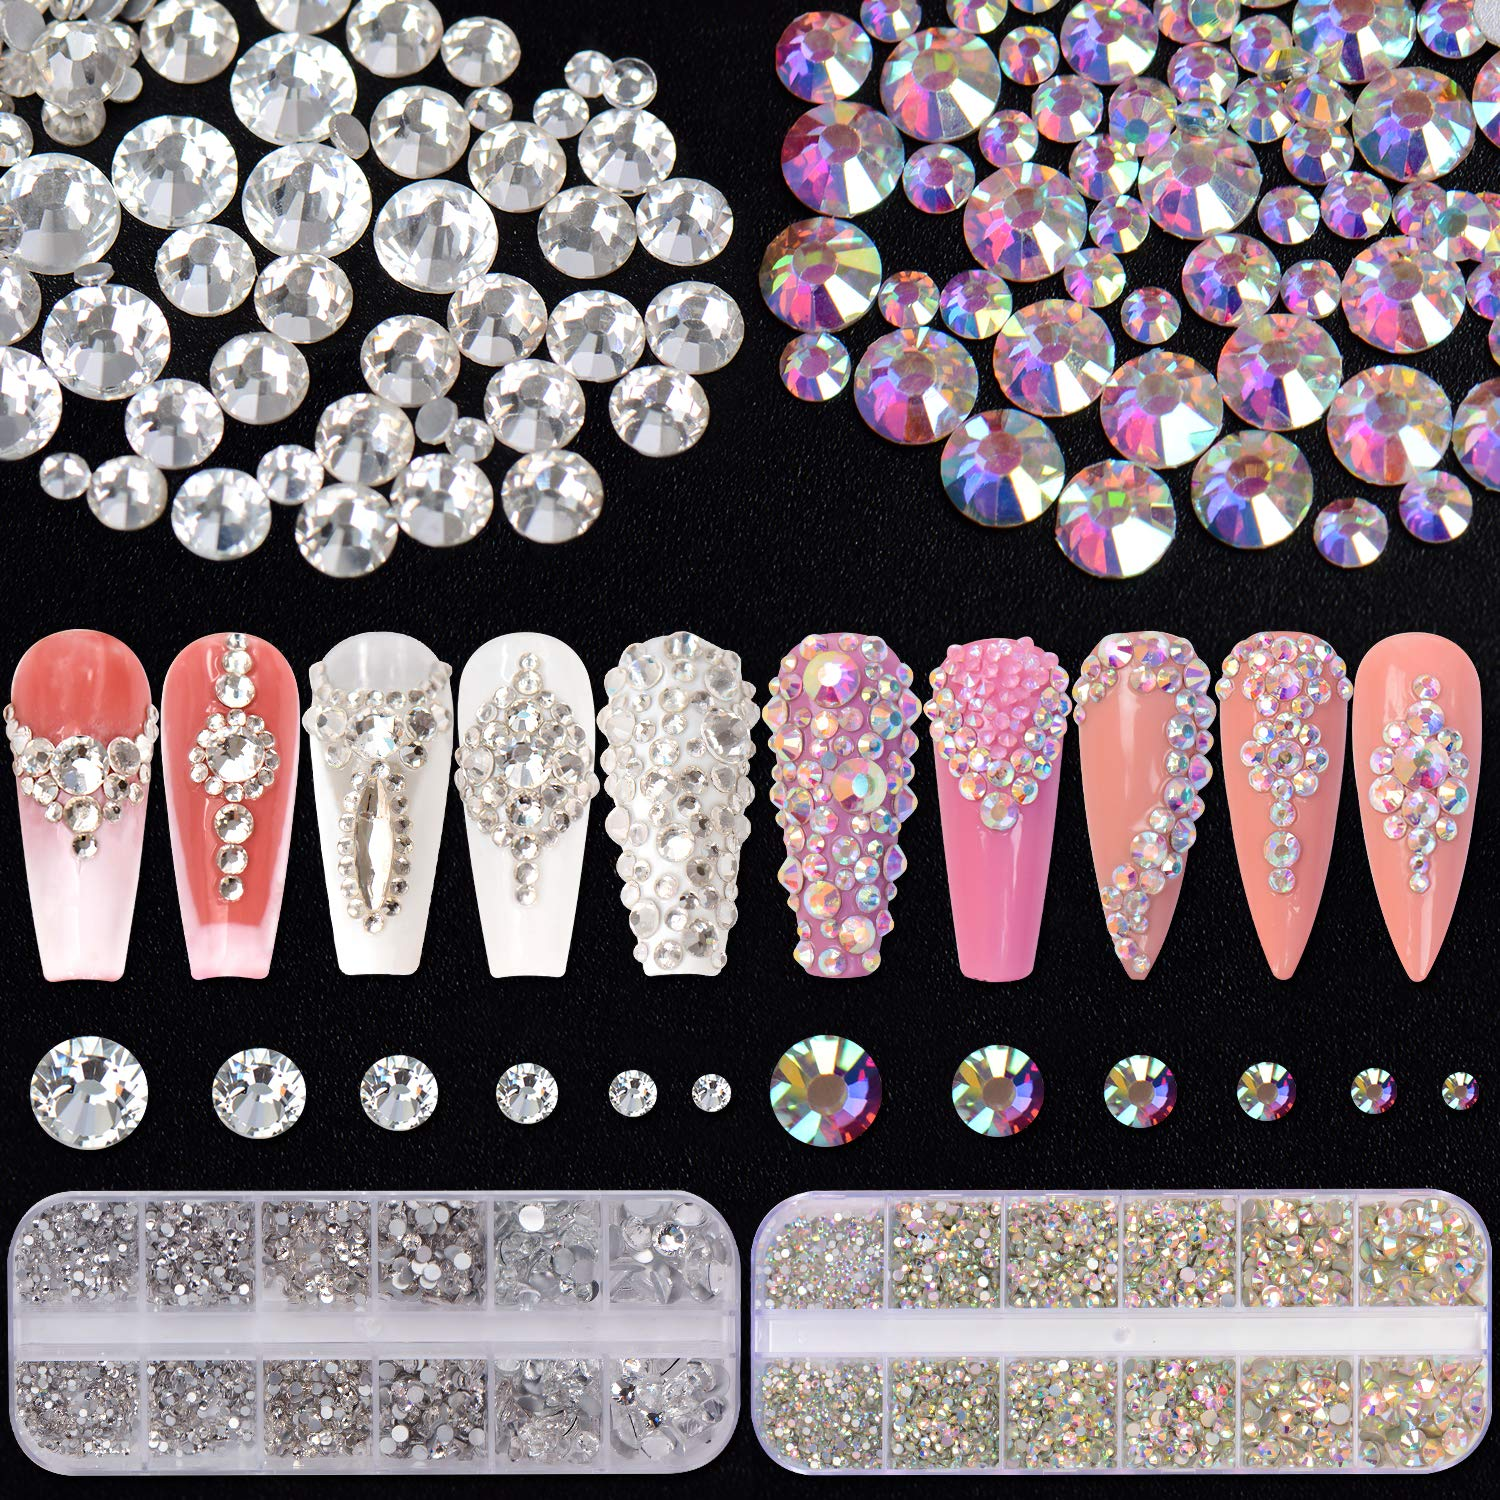 5400 Pieces Crystal Nail Rhinestones Set, Spearlcable Glass Flat Back Round Clear & AB Nail Gems for Crafts Nail Art Clothes Shoes Bags DIY (Color A)